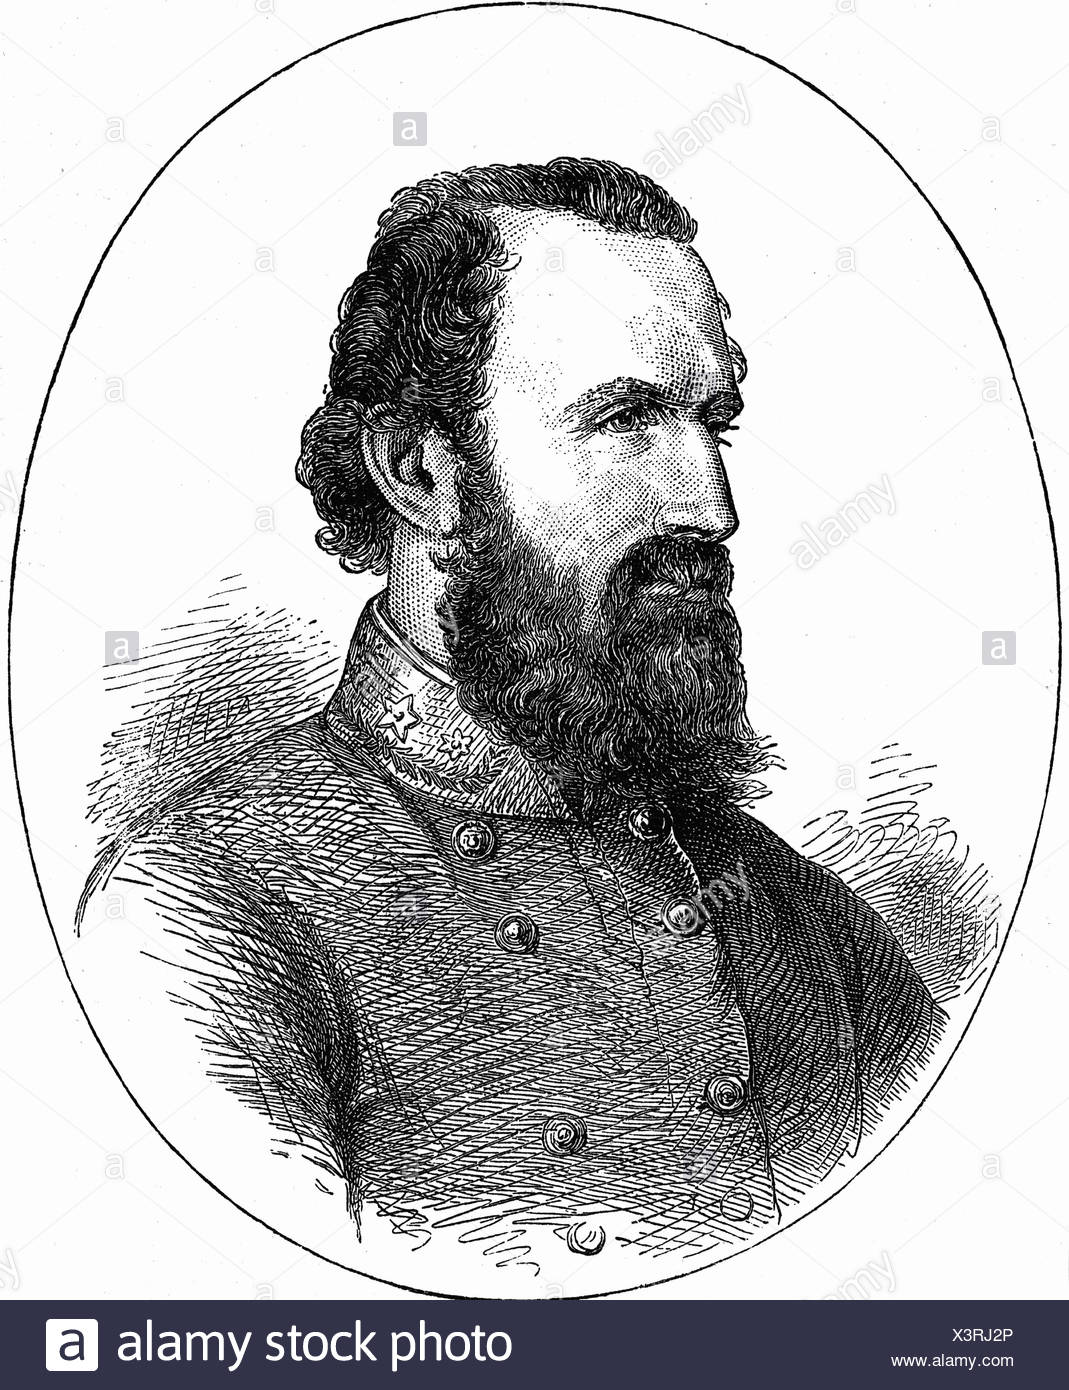 Jackson, Thomas 'Stonewall', 21.1.1824 - 10.5.1863, American General, portrait, wood engraving, 19th century, , Additional-Rights-Clearances-NA - Stock Image